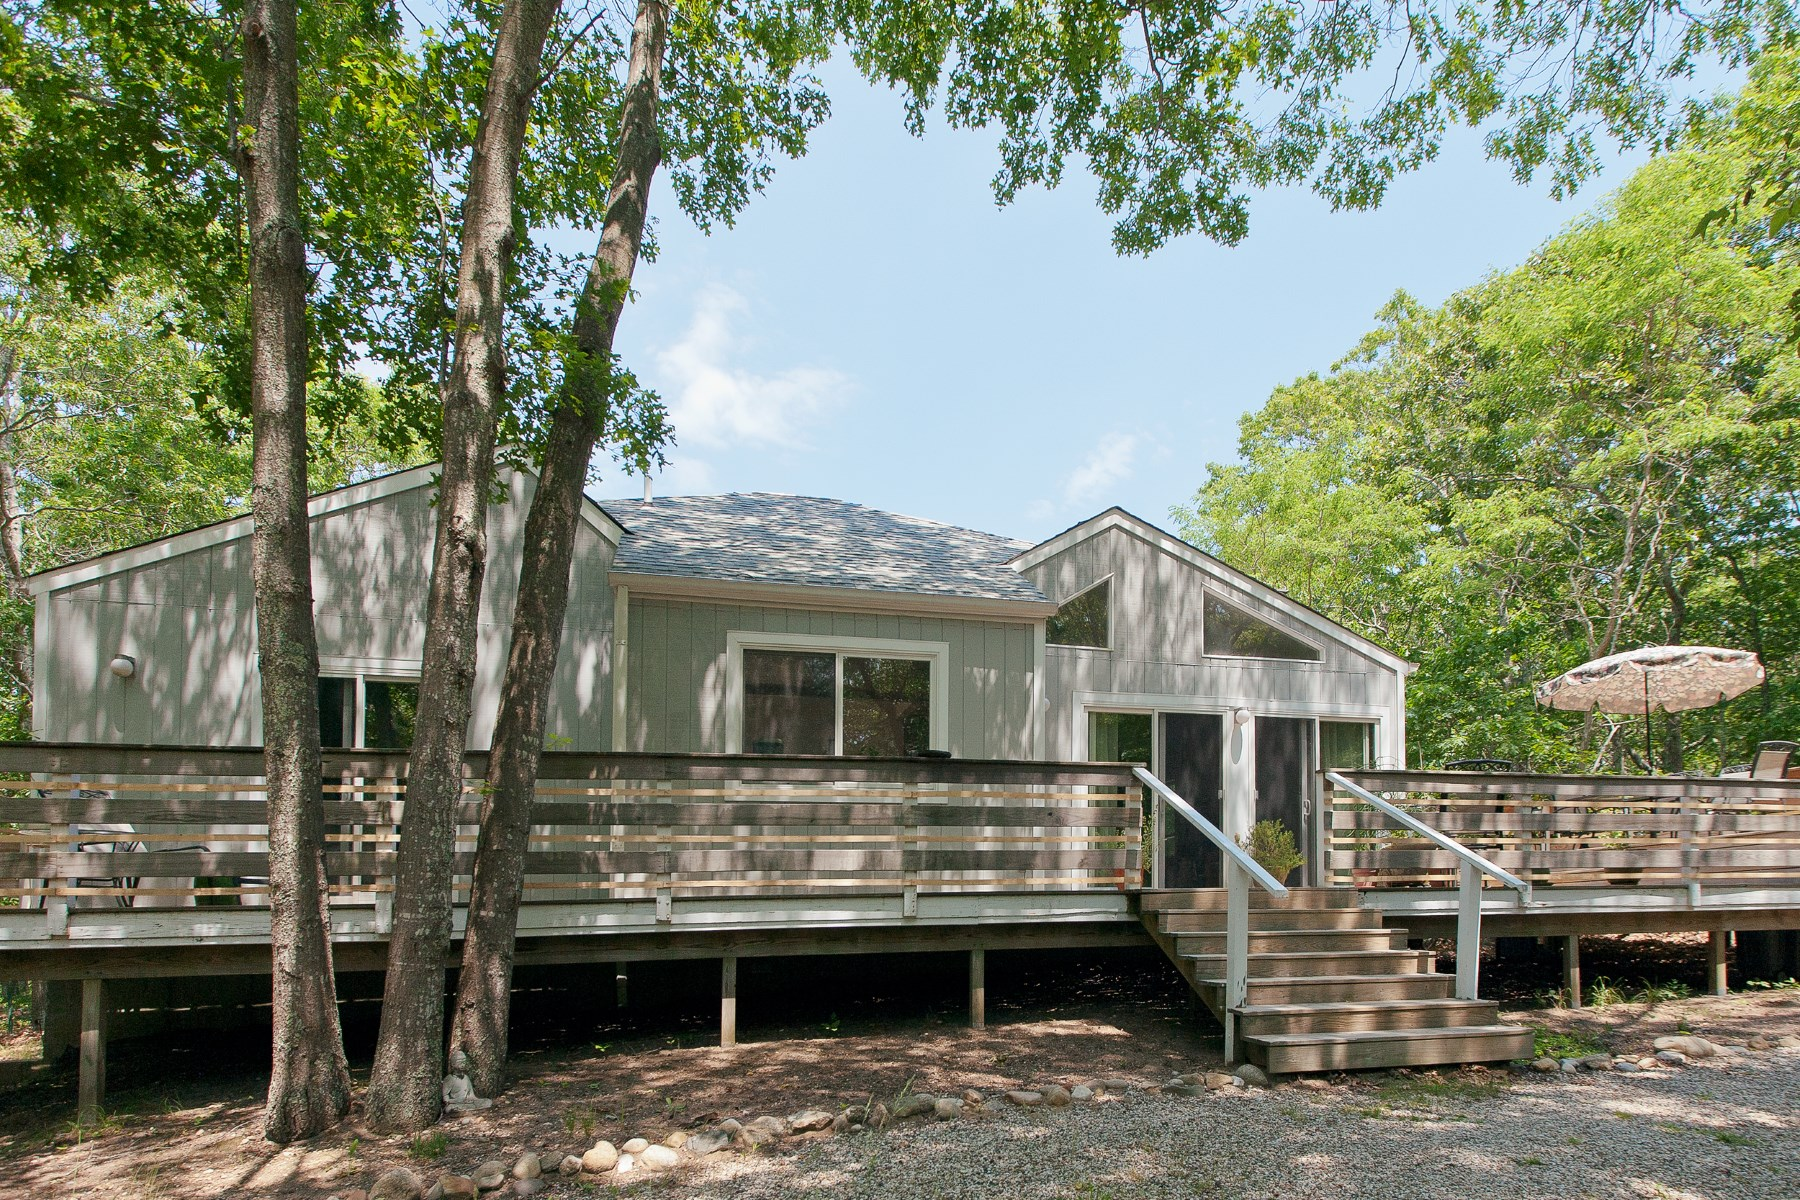 Single Family Home for Sale at Charming Home On 1.17+/- Acres 19 Renees Way East Hampton, New York, 11937 United States